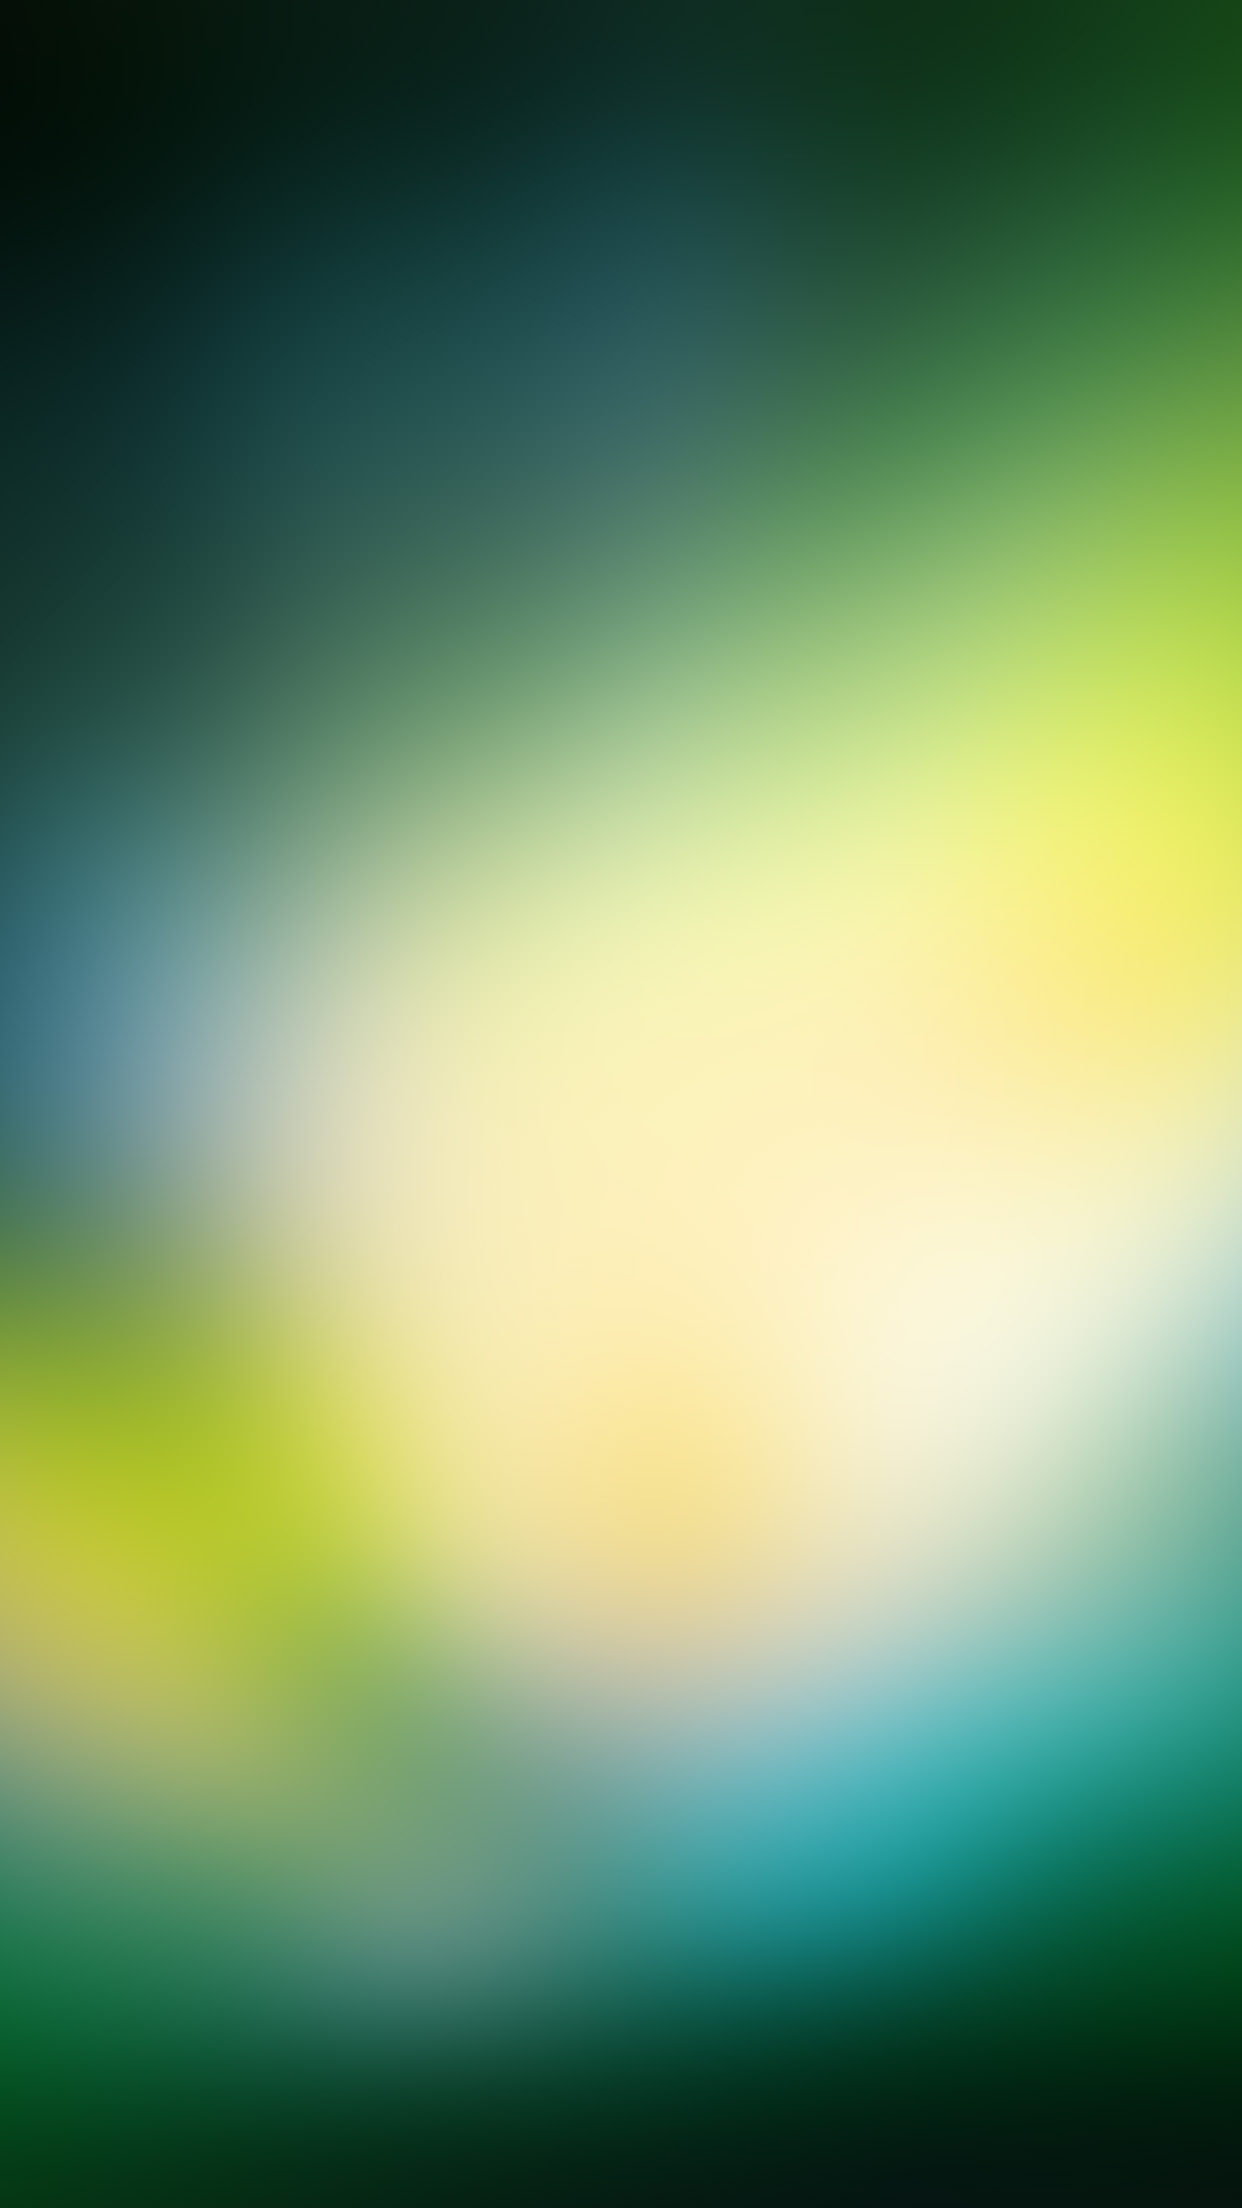 Green os background gradation blur android wallpaper android hd green os background gradation blur android wallpaper android hd wallpapers voltagebd Gallery